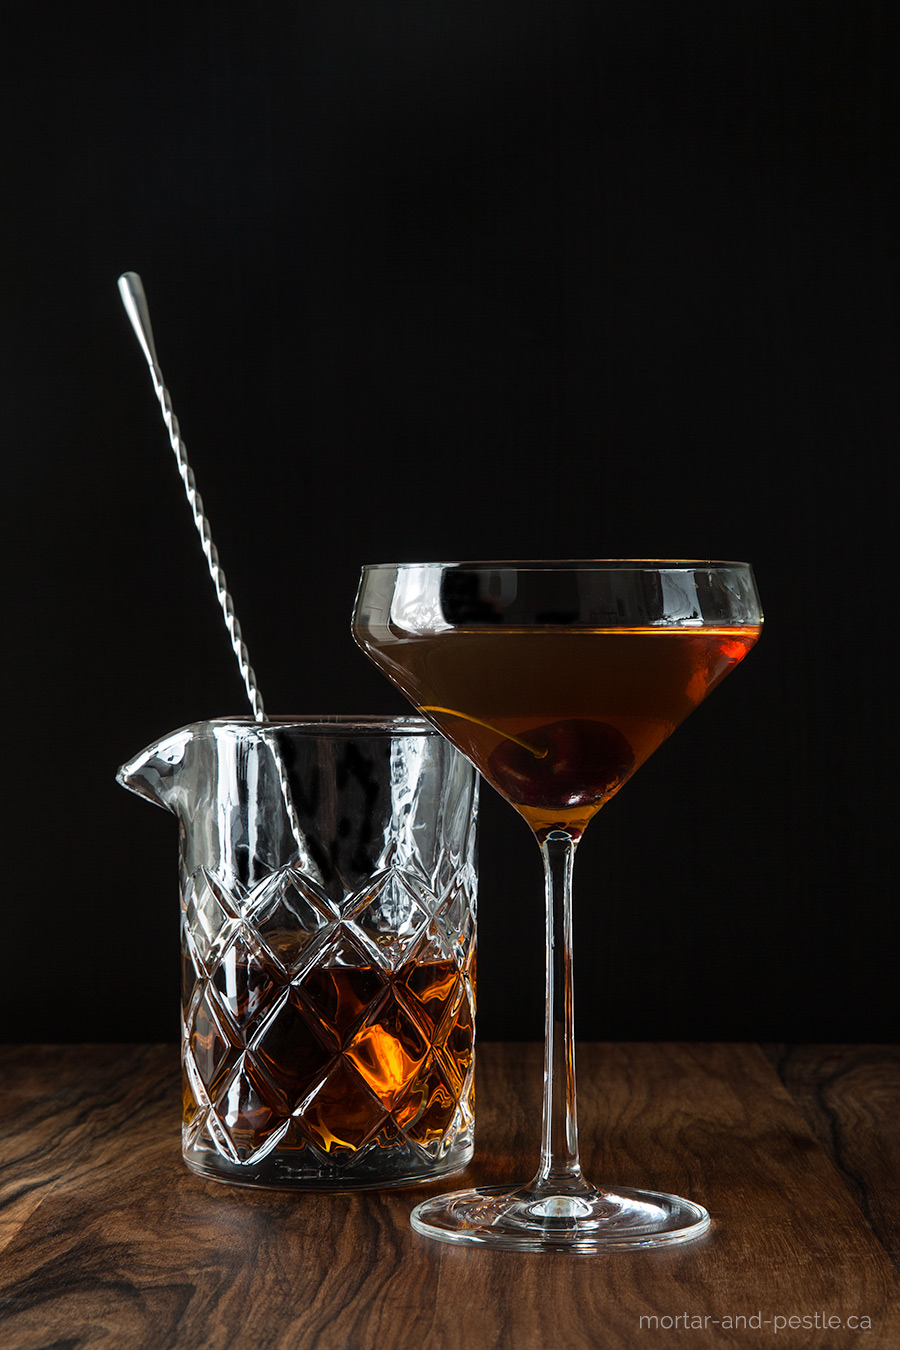 A Mexican ancho chile liqueur and home-made cocktail cherries put a spicy, smoky spin on the classic Manhattan.